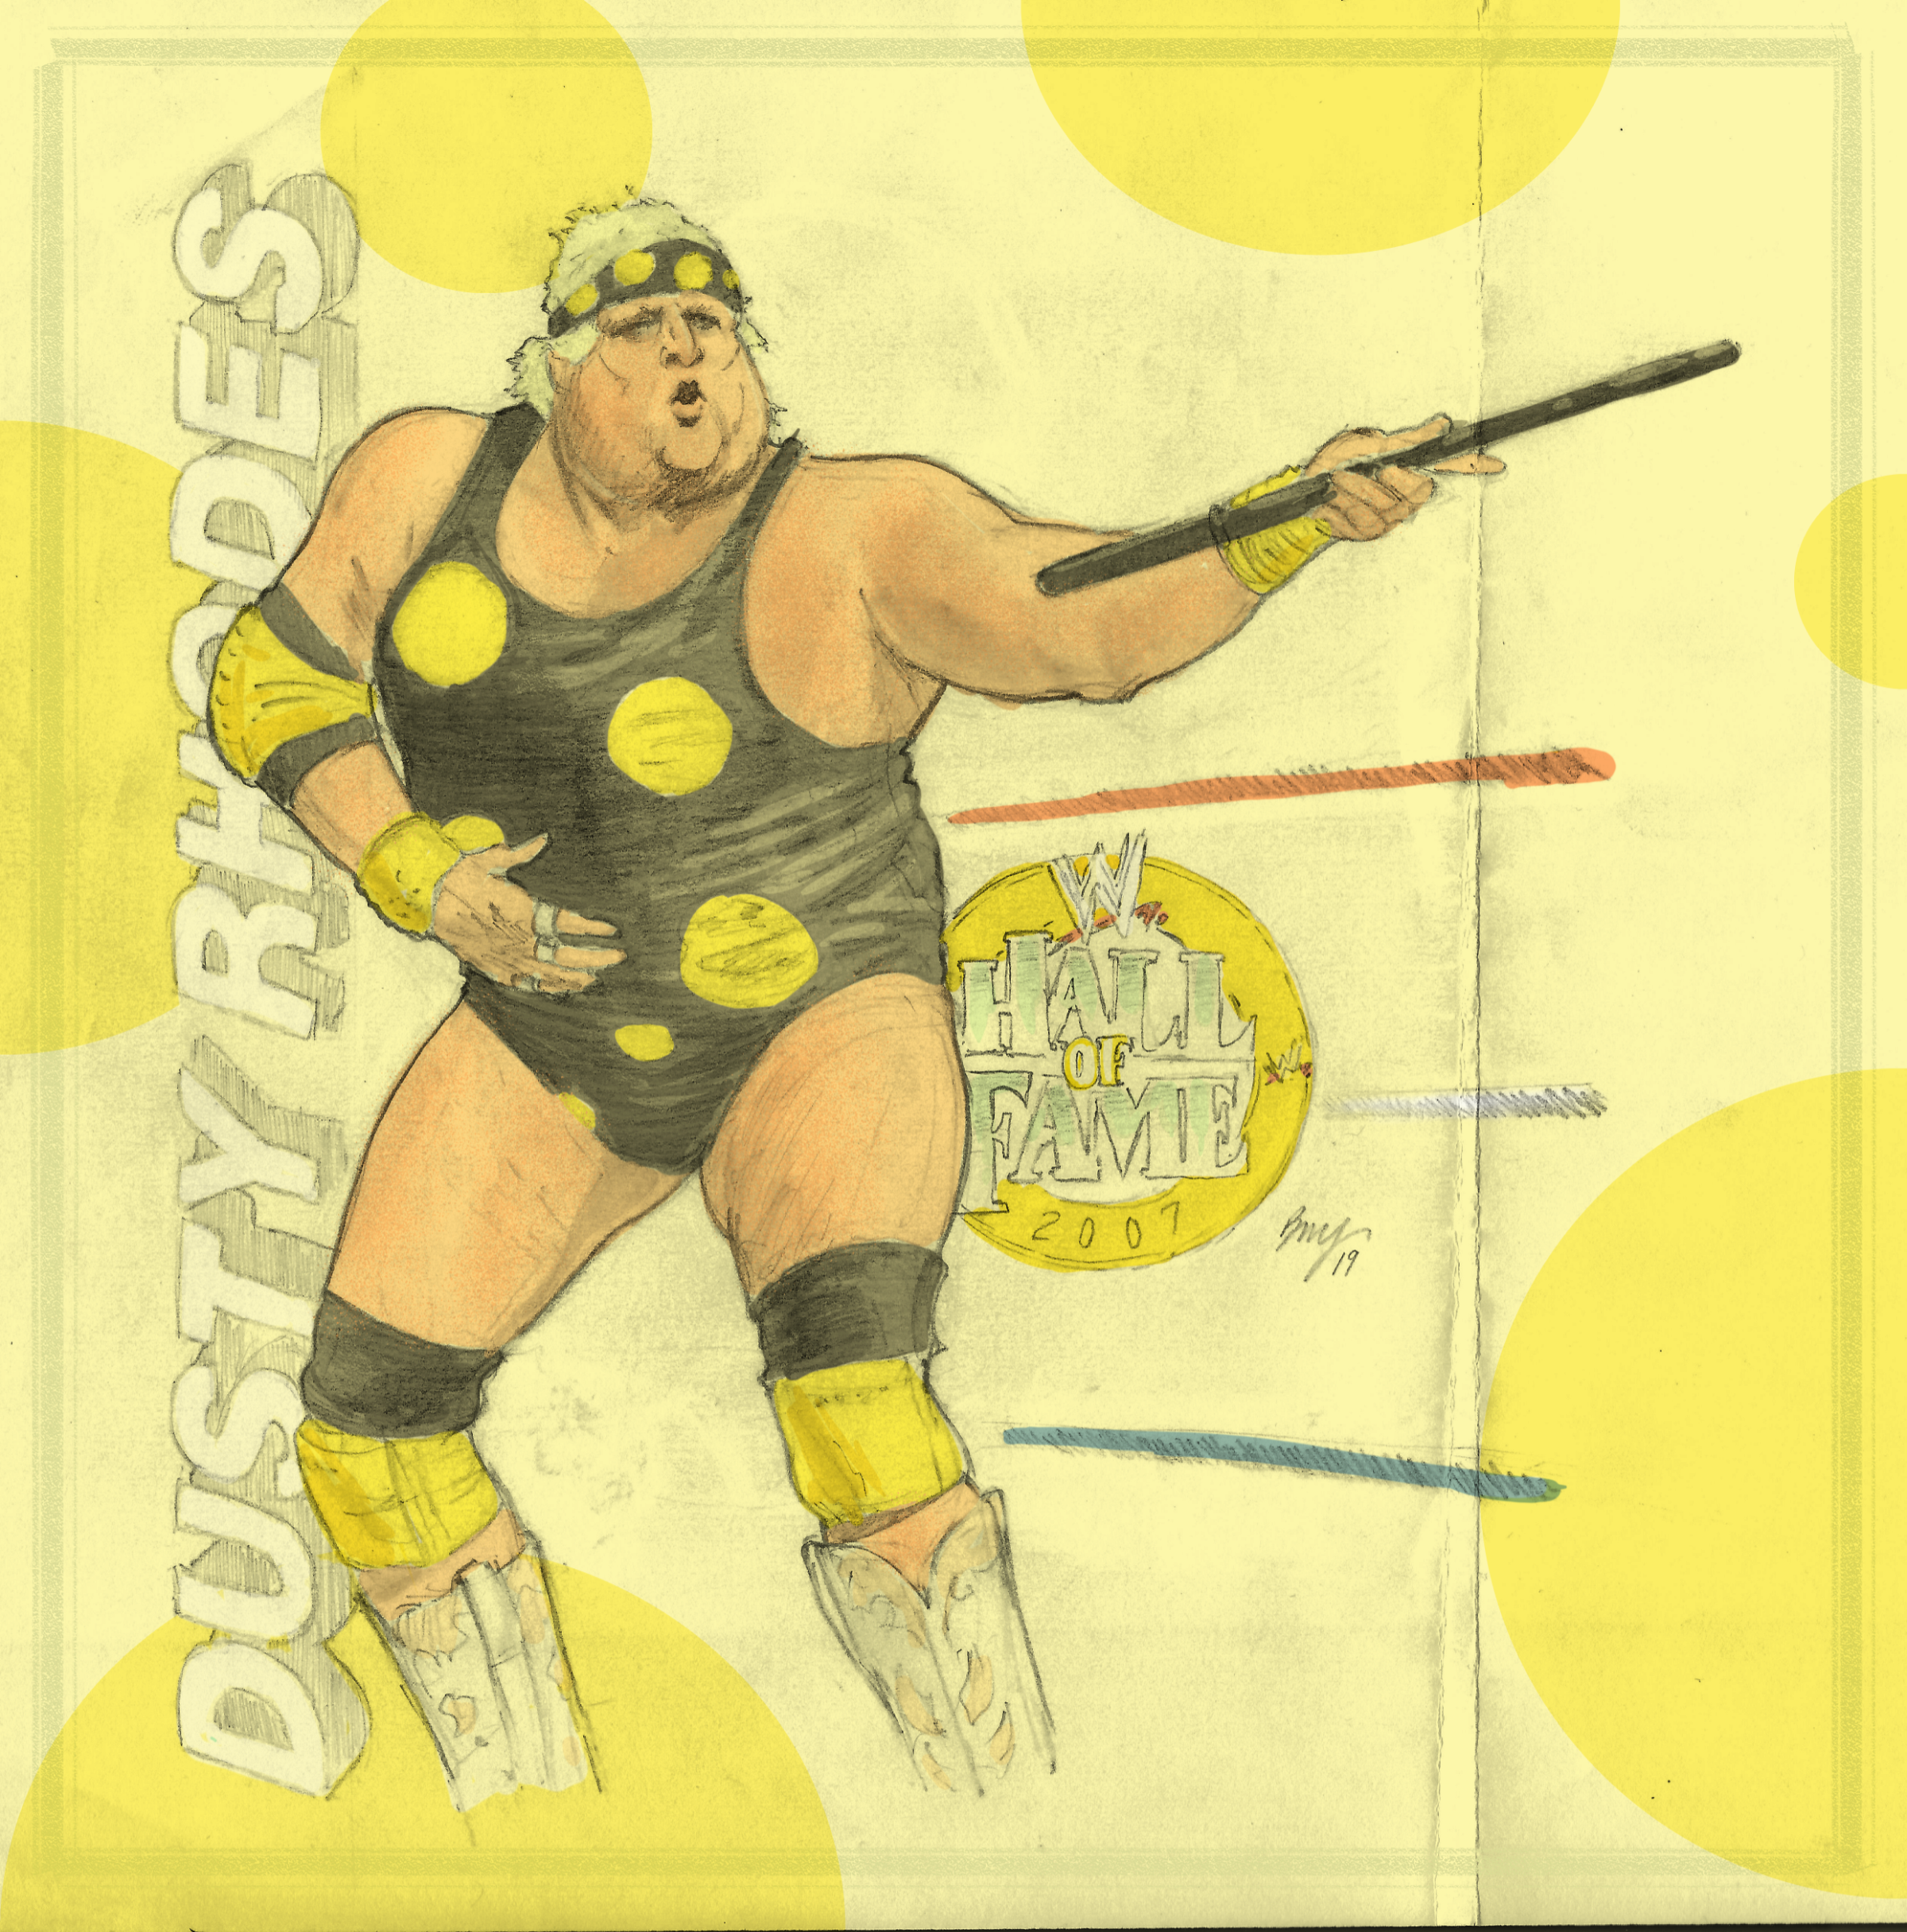 """WWE's Dusty Rhodes , """"The American Dream"""" - 2007 WWE Hall of Fame Inductee  Paper - Multi-use copy paper  Size - 8.5'"""" x 9""""  Medium - HB Pencil ; Eraser - Stick ; Blending Stump  Color - Digital Color (Sketchbook Pro)"""